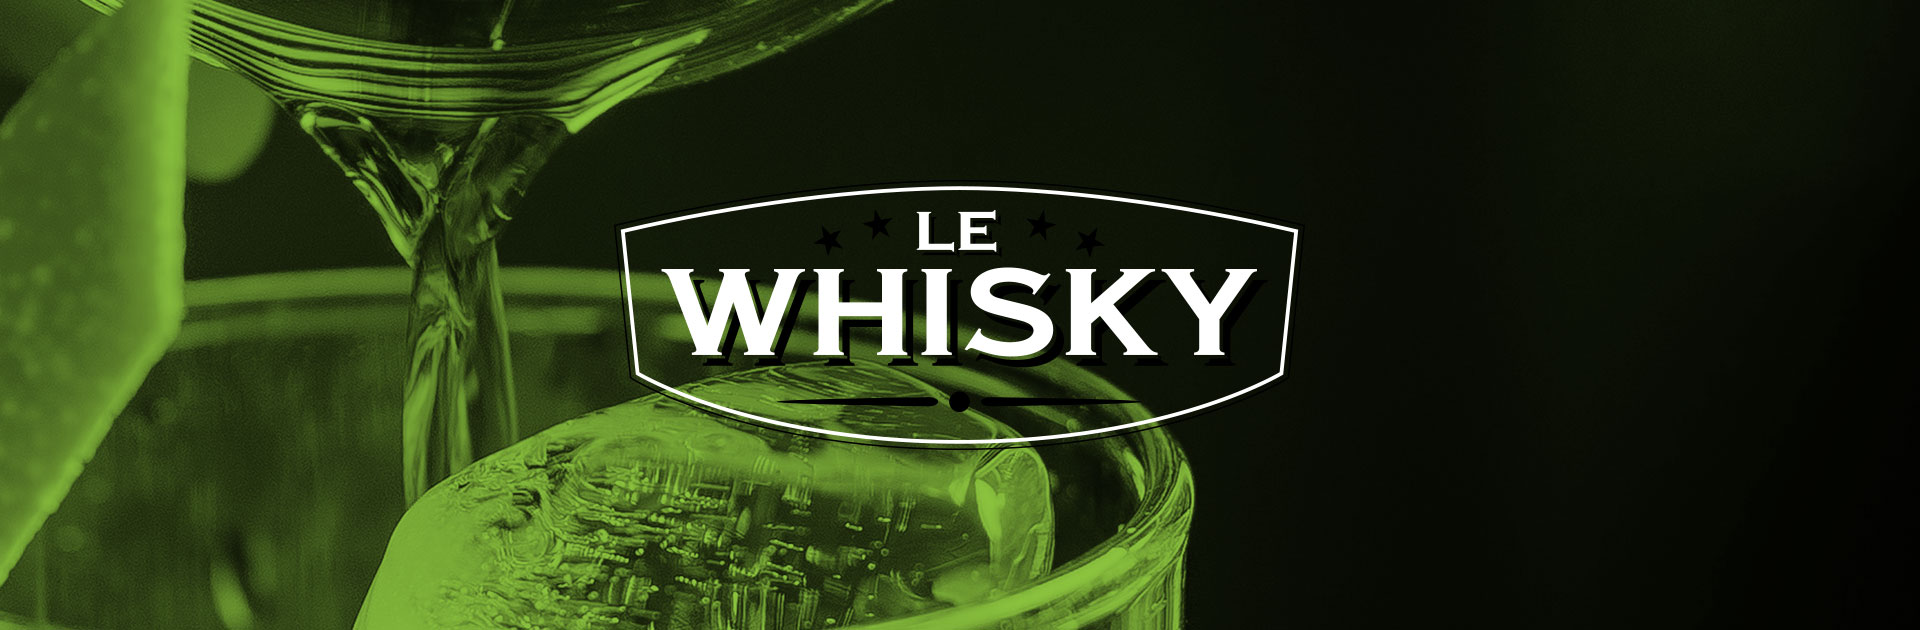 whisky avranches fougeres